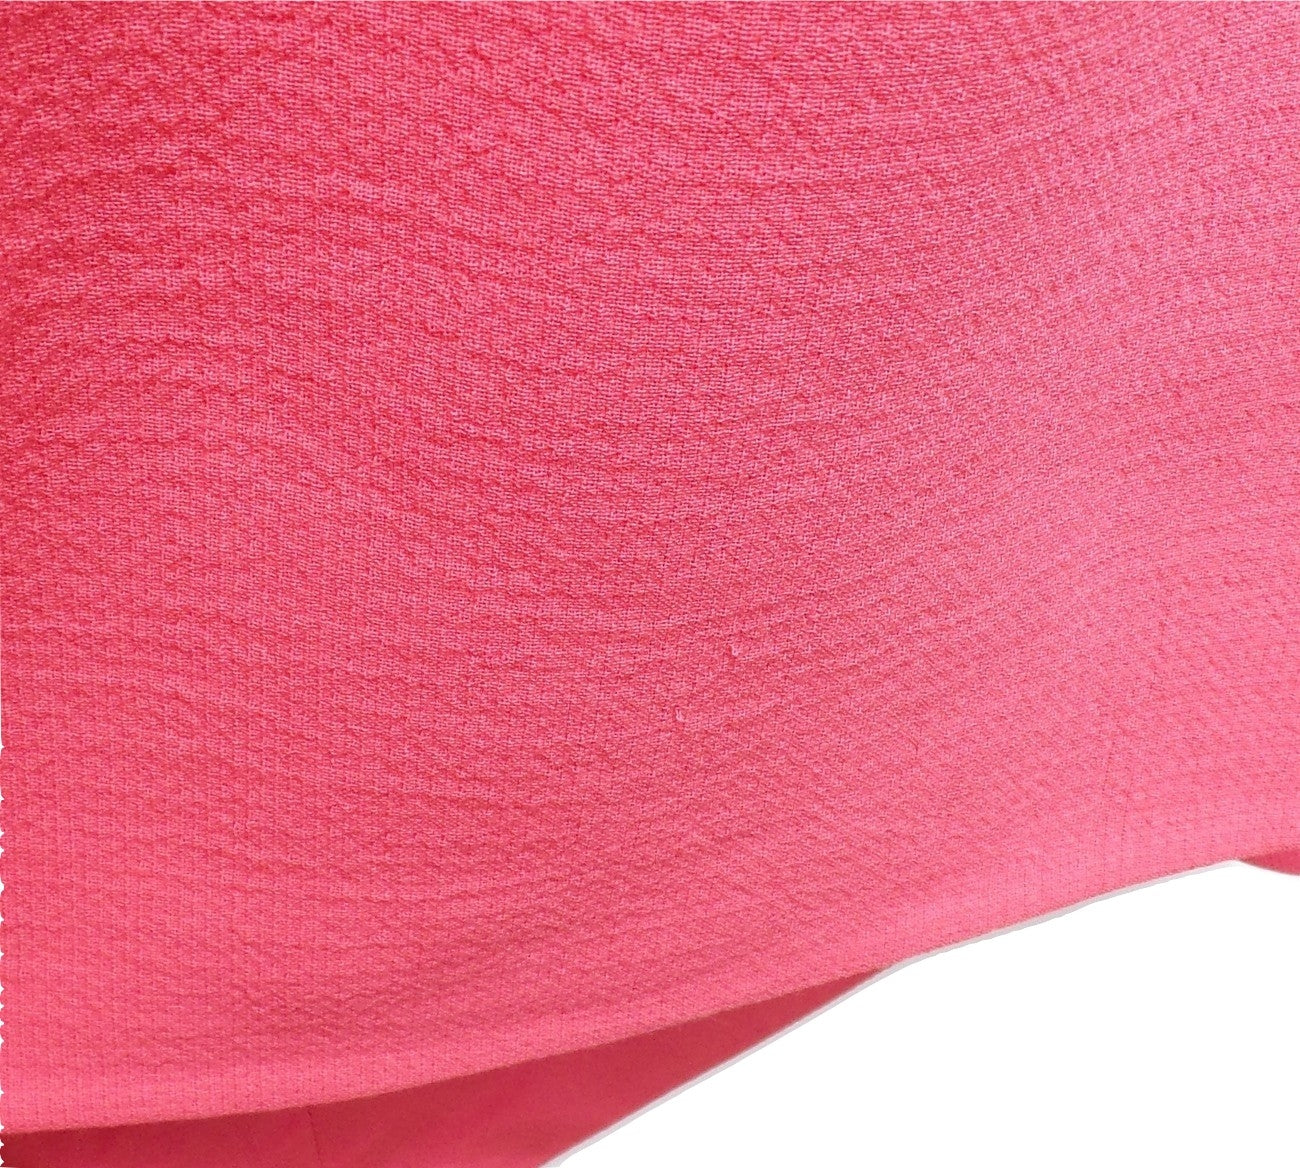 CHRISTIAN DIOR FW15 Bright Pink Short Cap Sleeve Virgin Wool Hi-Lo Dress IT46 10